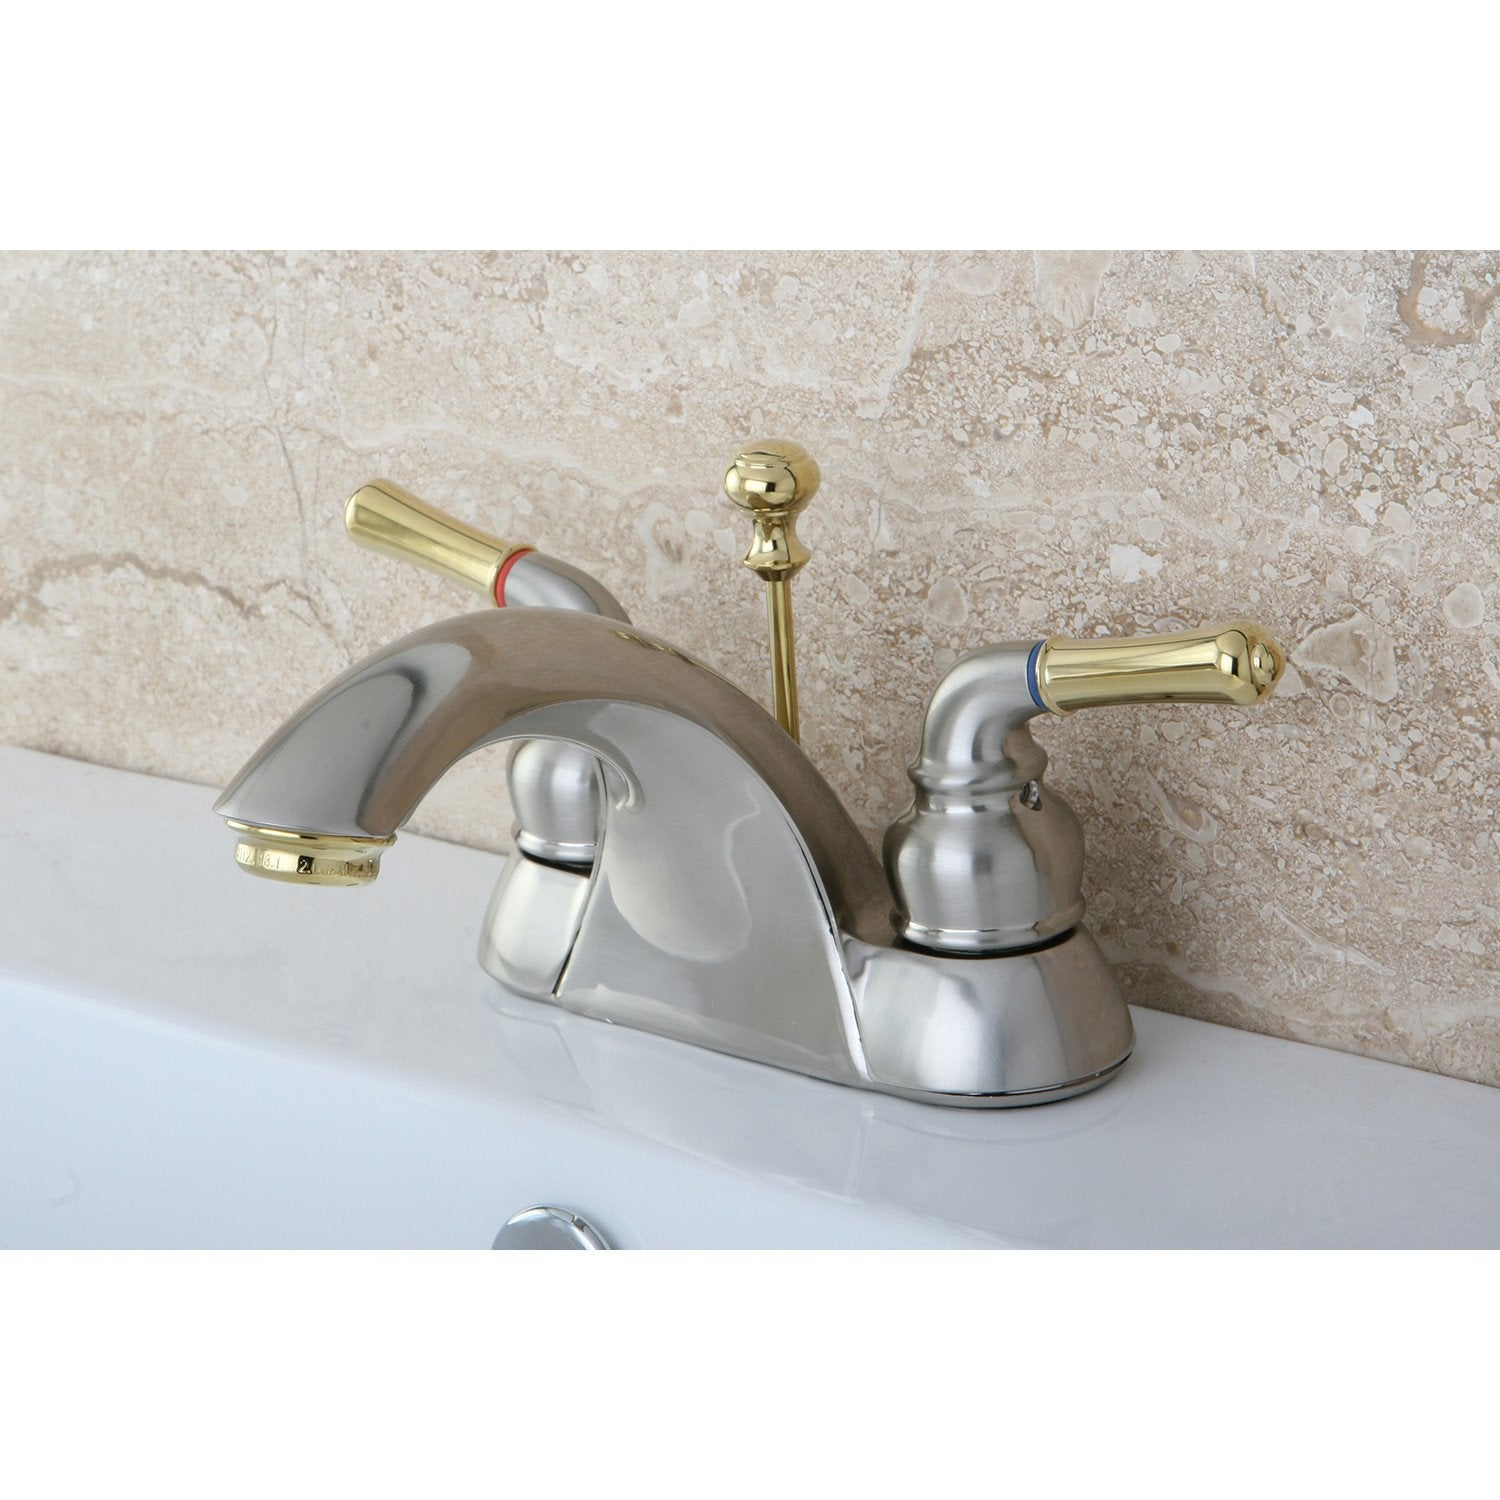 "Kingston Satin Nickel/Polished Brass 4"" Centerset Bathroom Faucet KB2629"